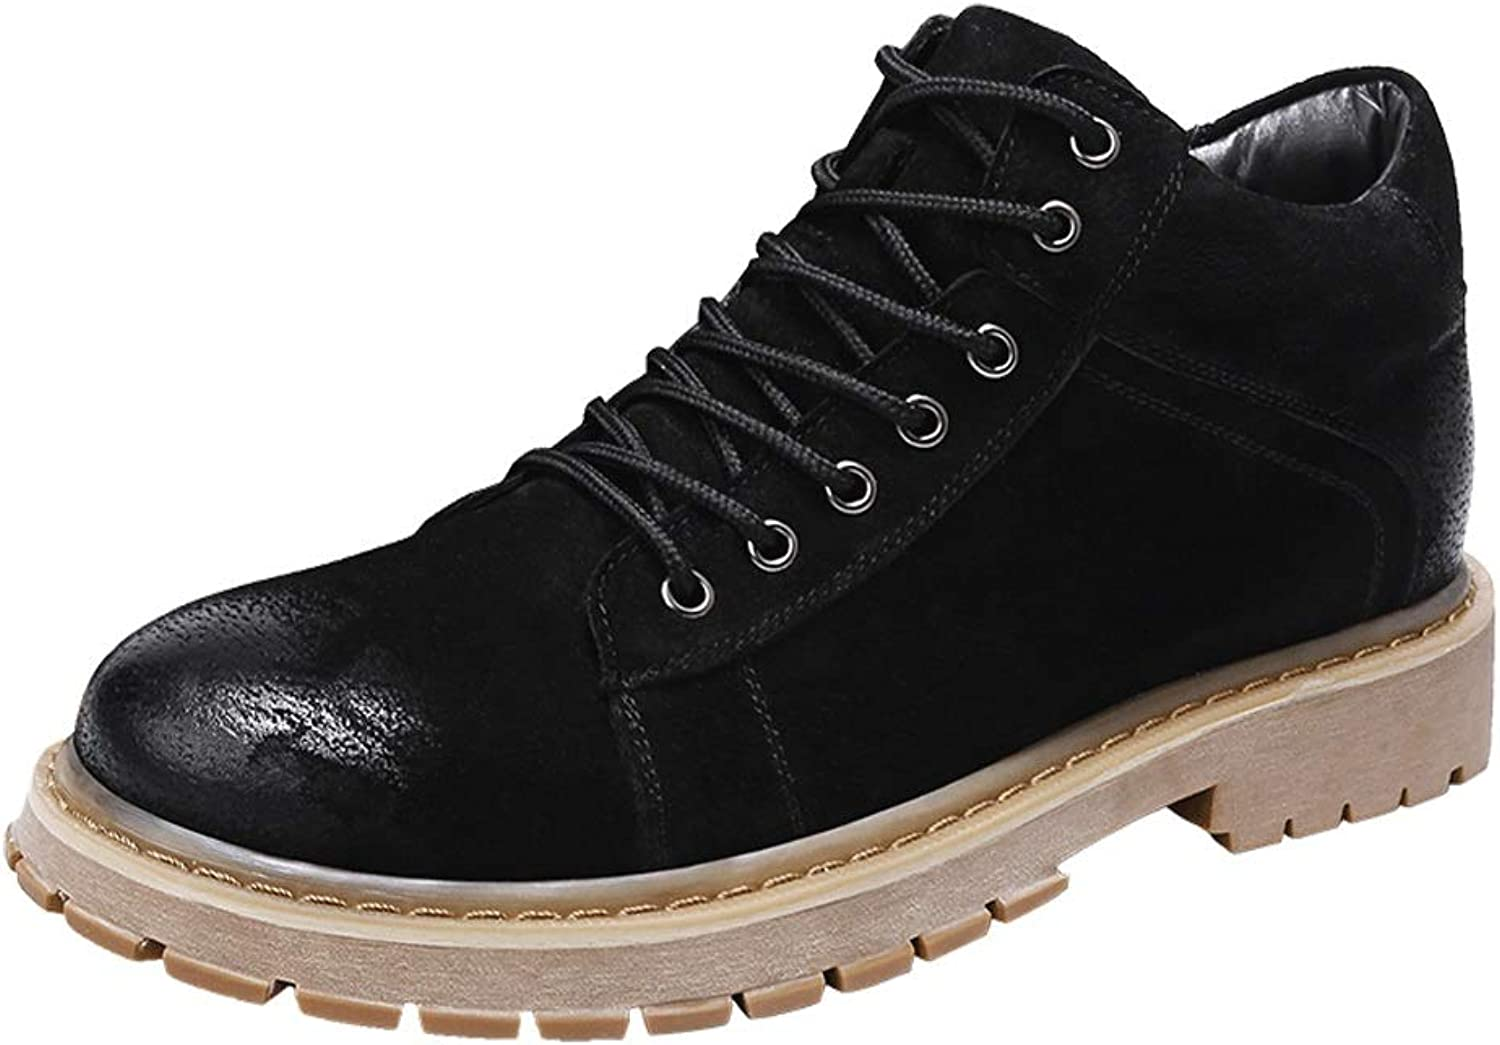 MUMUWU Men's Ankle Boots Casual Fashion Retro Comfortable Non-slip Outsole High Top Work shoes Winter